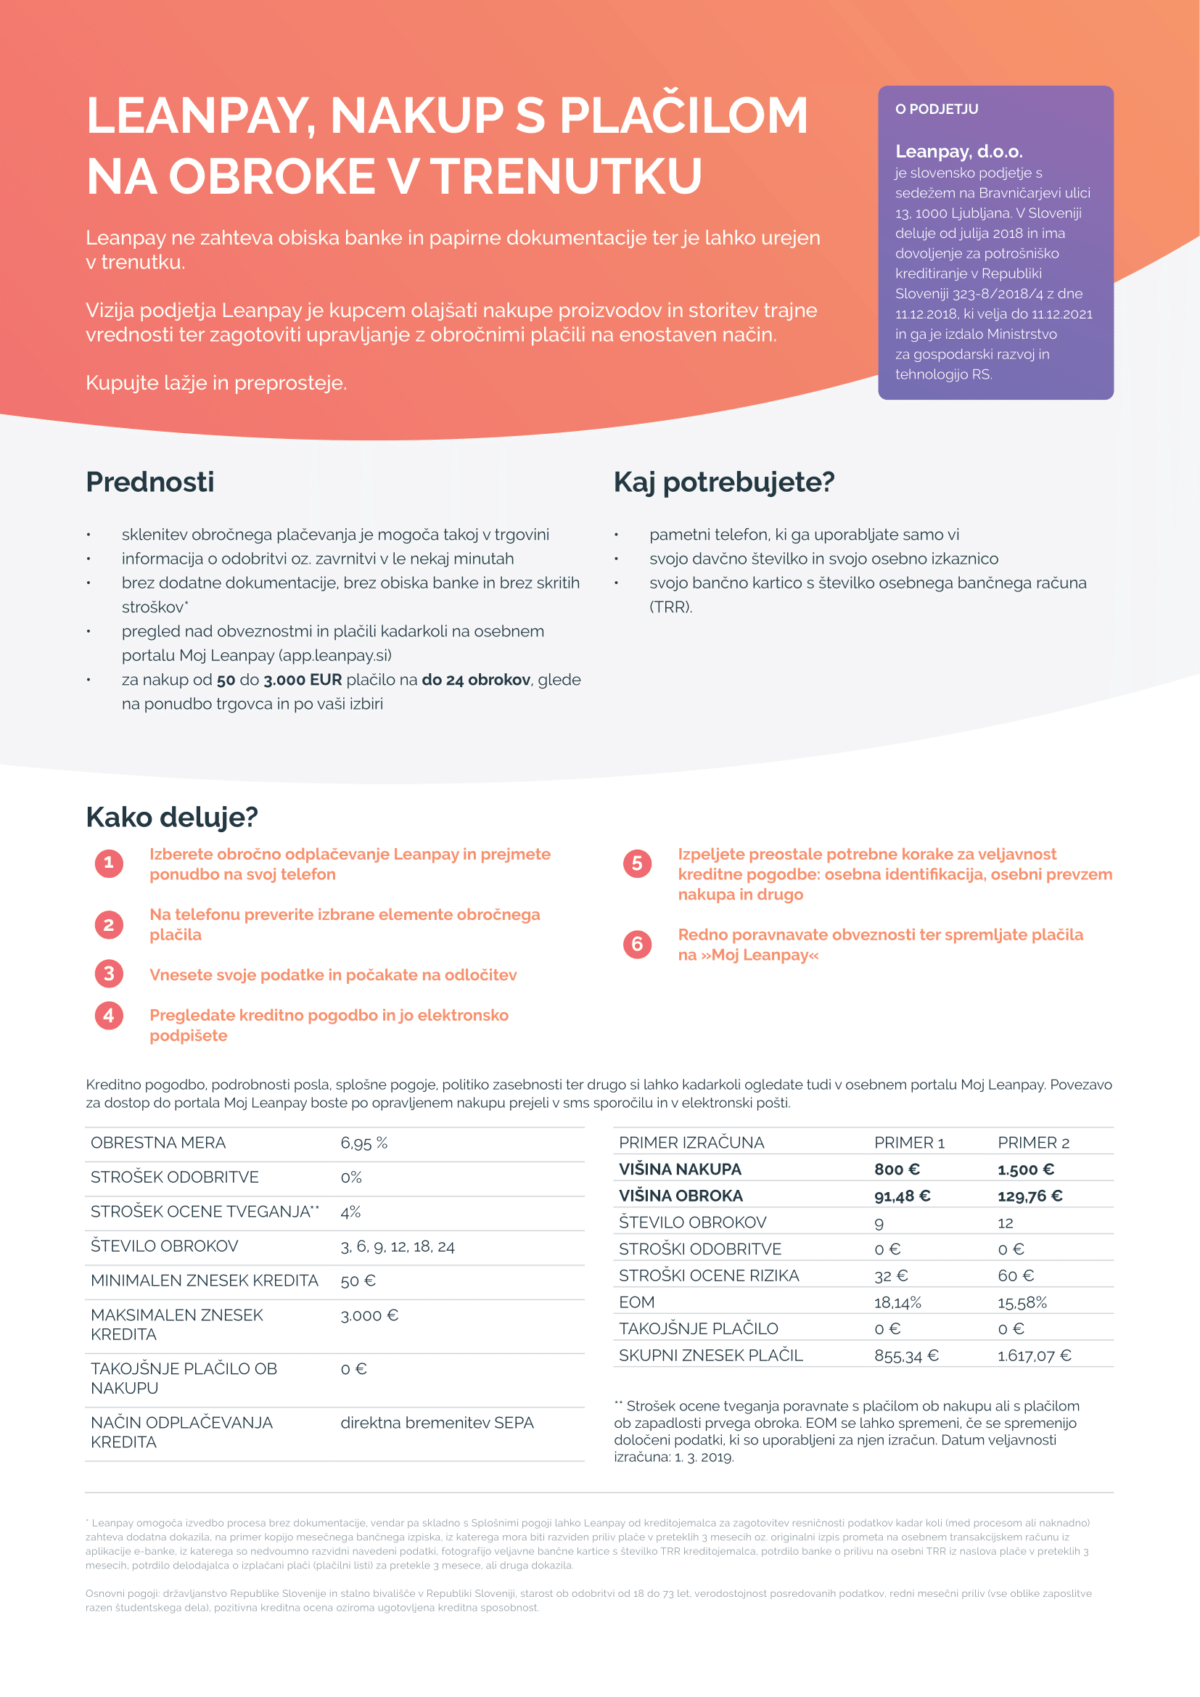 leanpay-2019-flyer_12_november_2019-REDNI-1-2-1200x1697